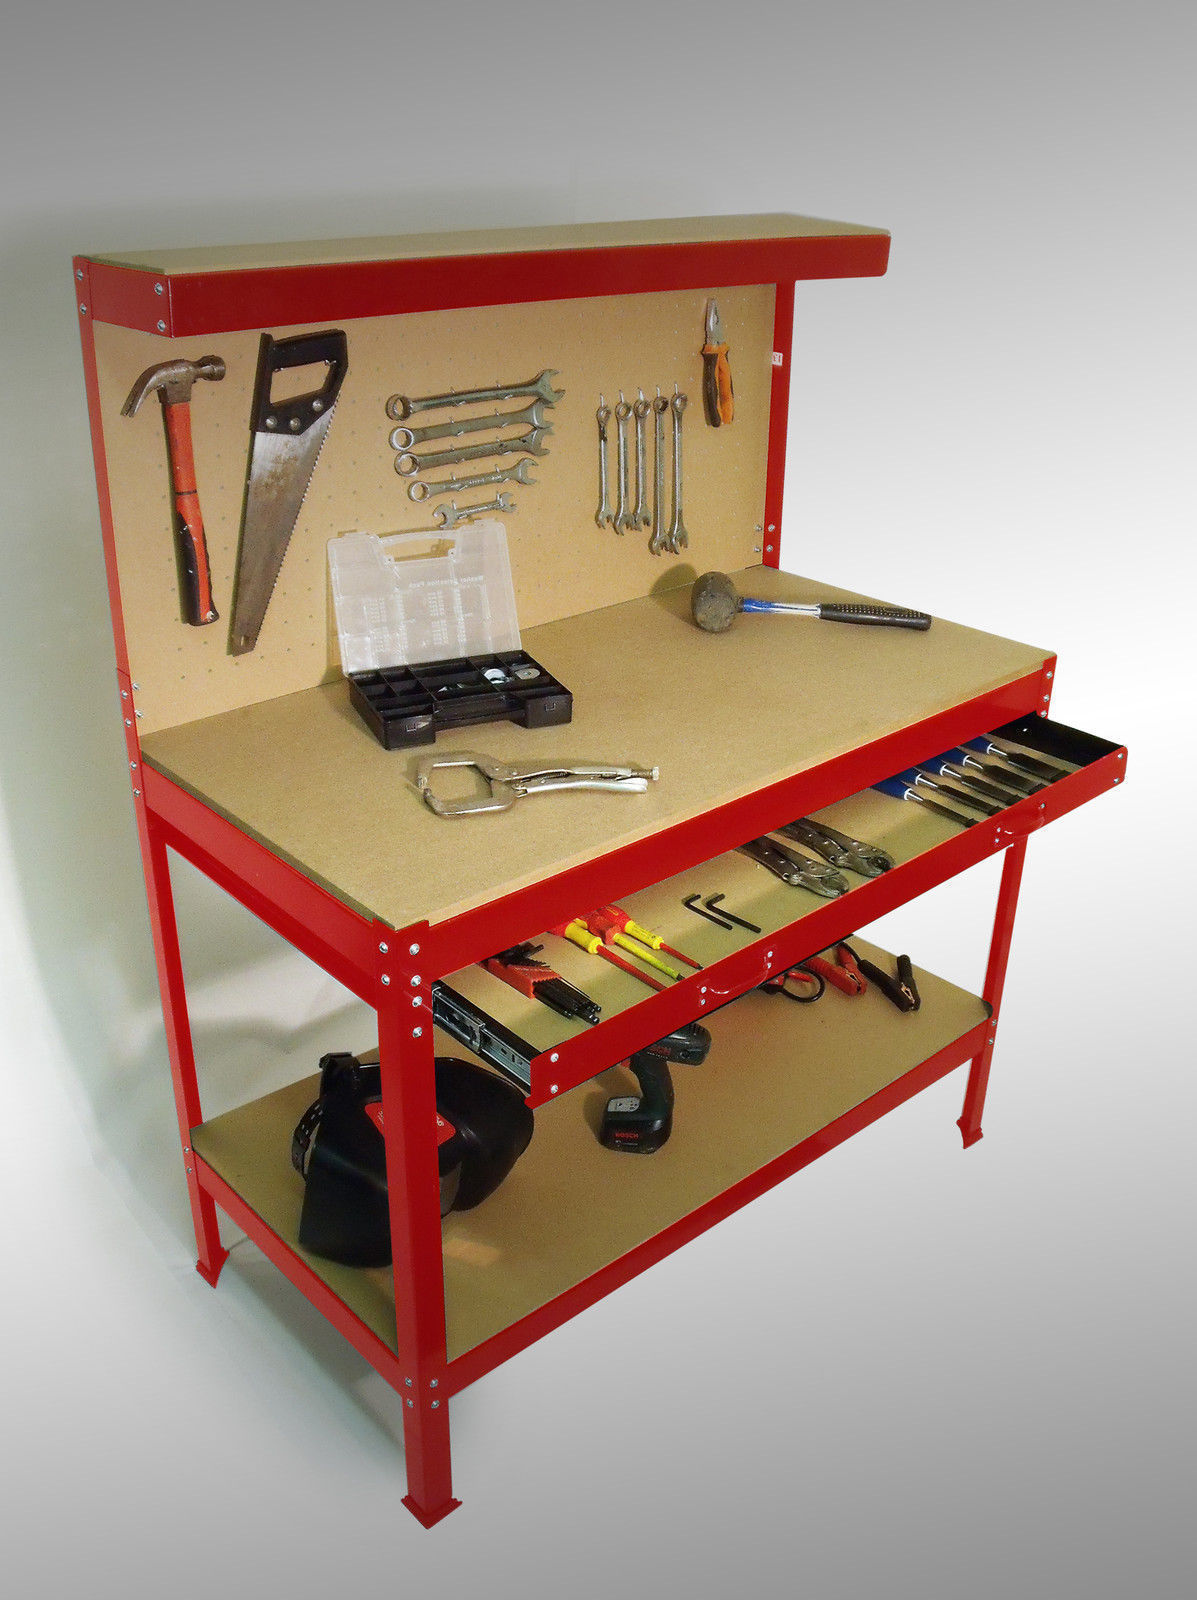 Workforce workbench closetmaid suite symphony 25-in tower kit